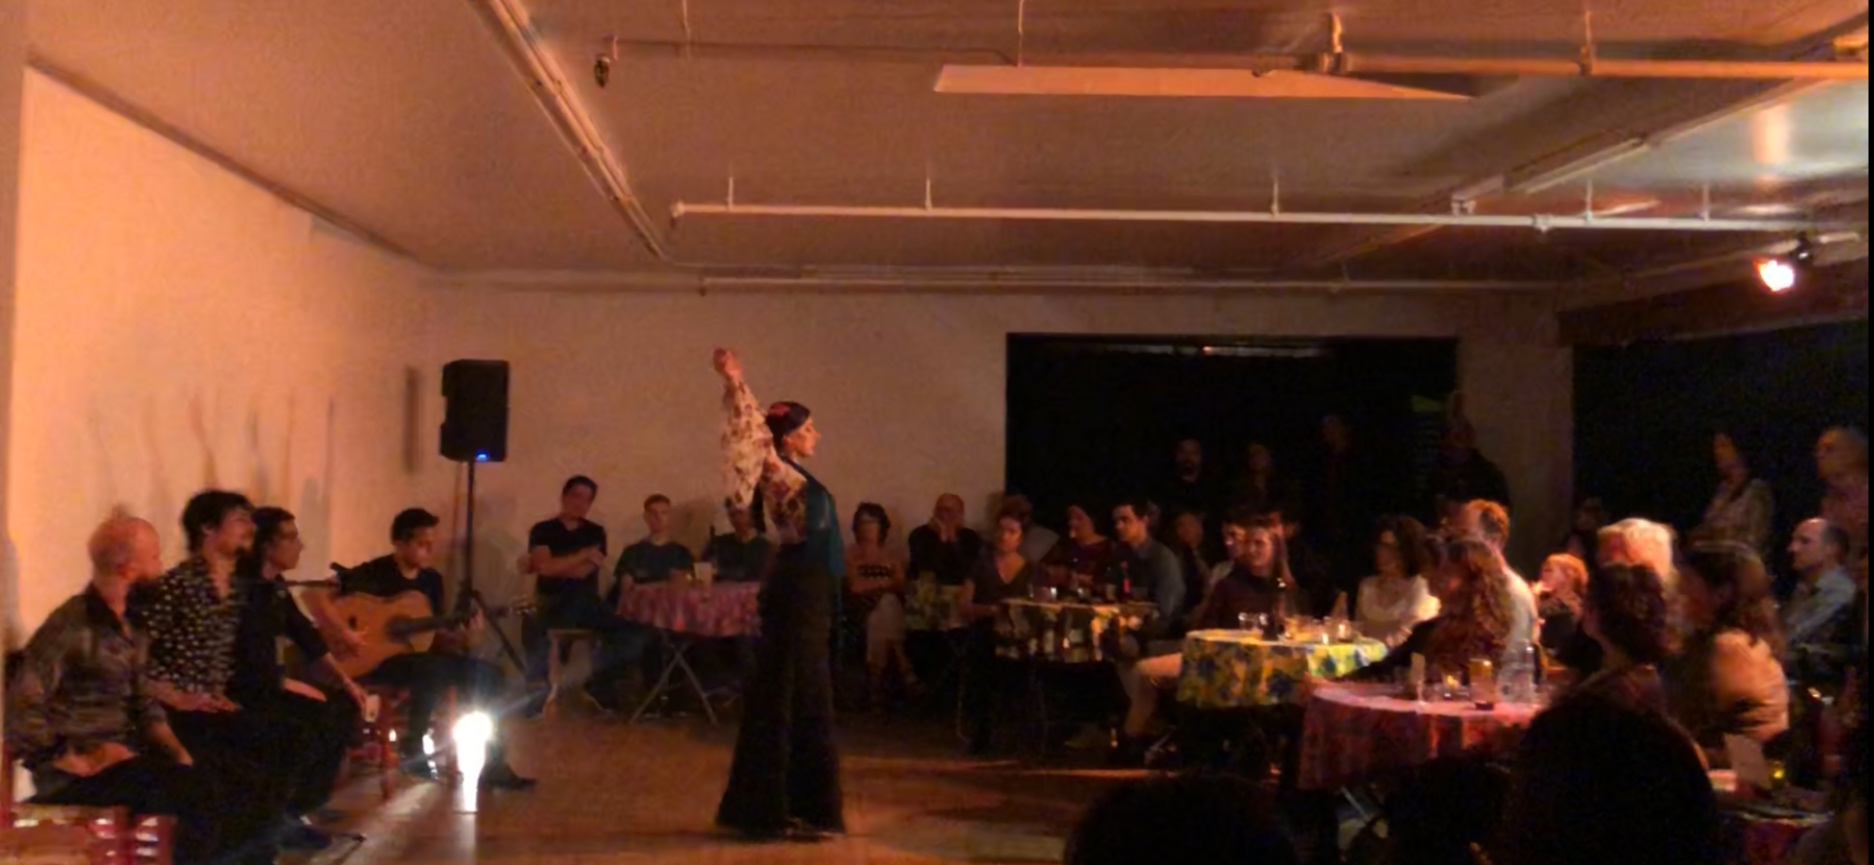 """El Rincón Flamenco will be back! - Our sold-out flamenco show """"El Rincón Flamenco"""" will be back on Saturday, August 24 at 8:00pm.The tickets became available on Brownpapertickets today! Ole!!Advance tickets are only available till the end of FRIDAY, AUGUST 23, 2019 - ONE DAY BEFORE the show."""